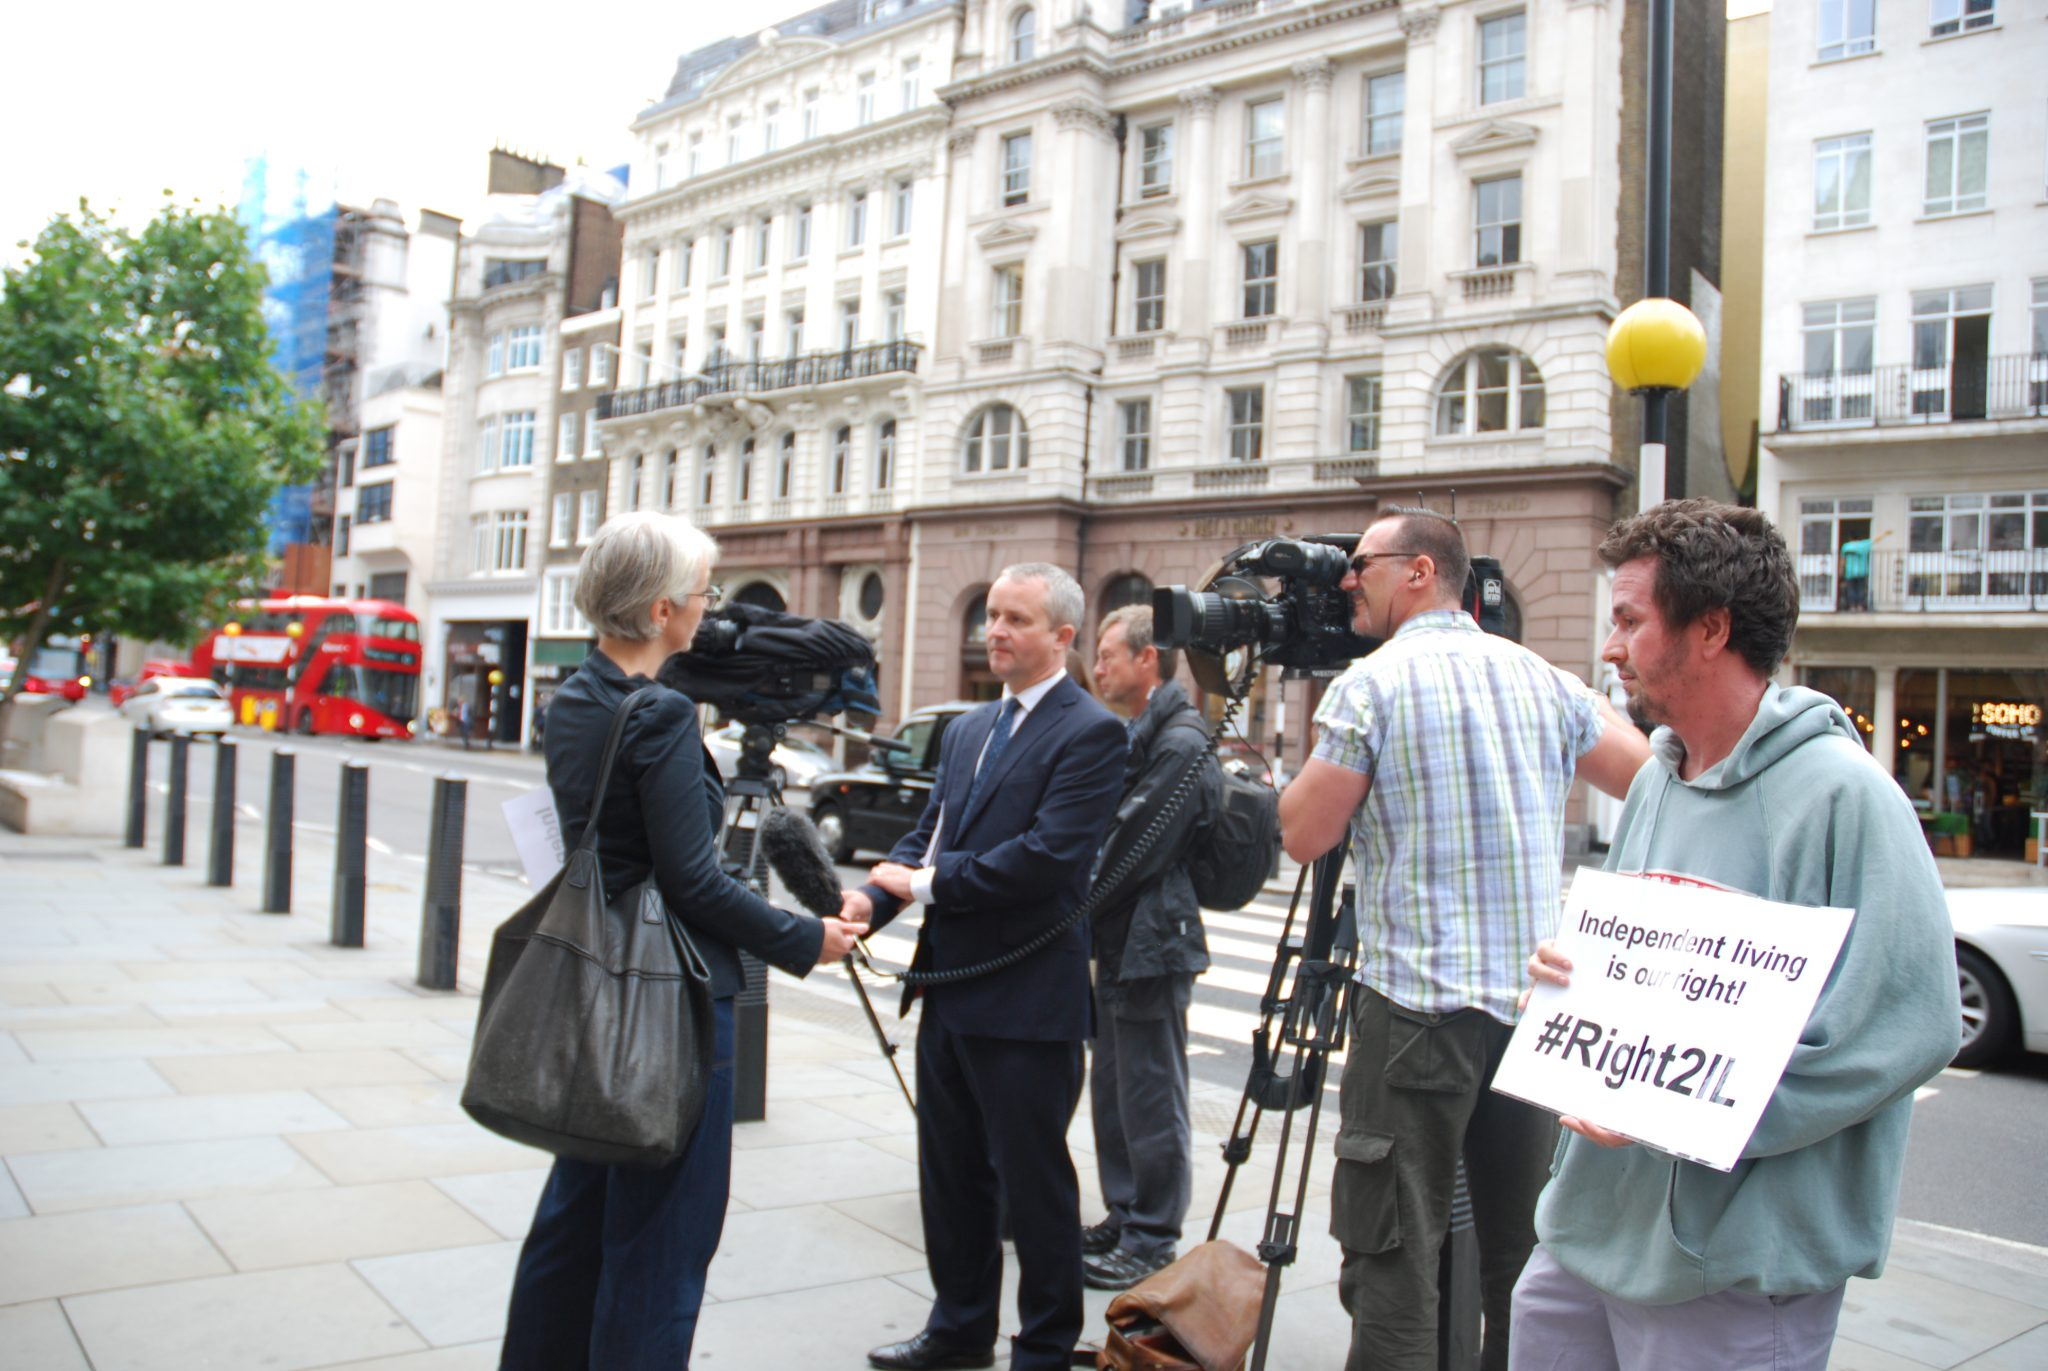 Tracey Lazard interviewed outside the Royal Courts of Justice with a man in the foreground holding a placard reading 'Right2IL'